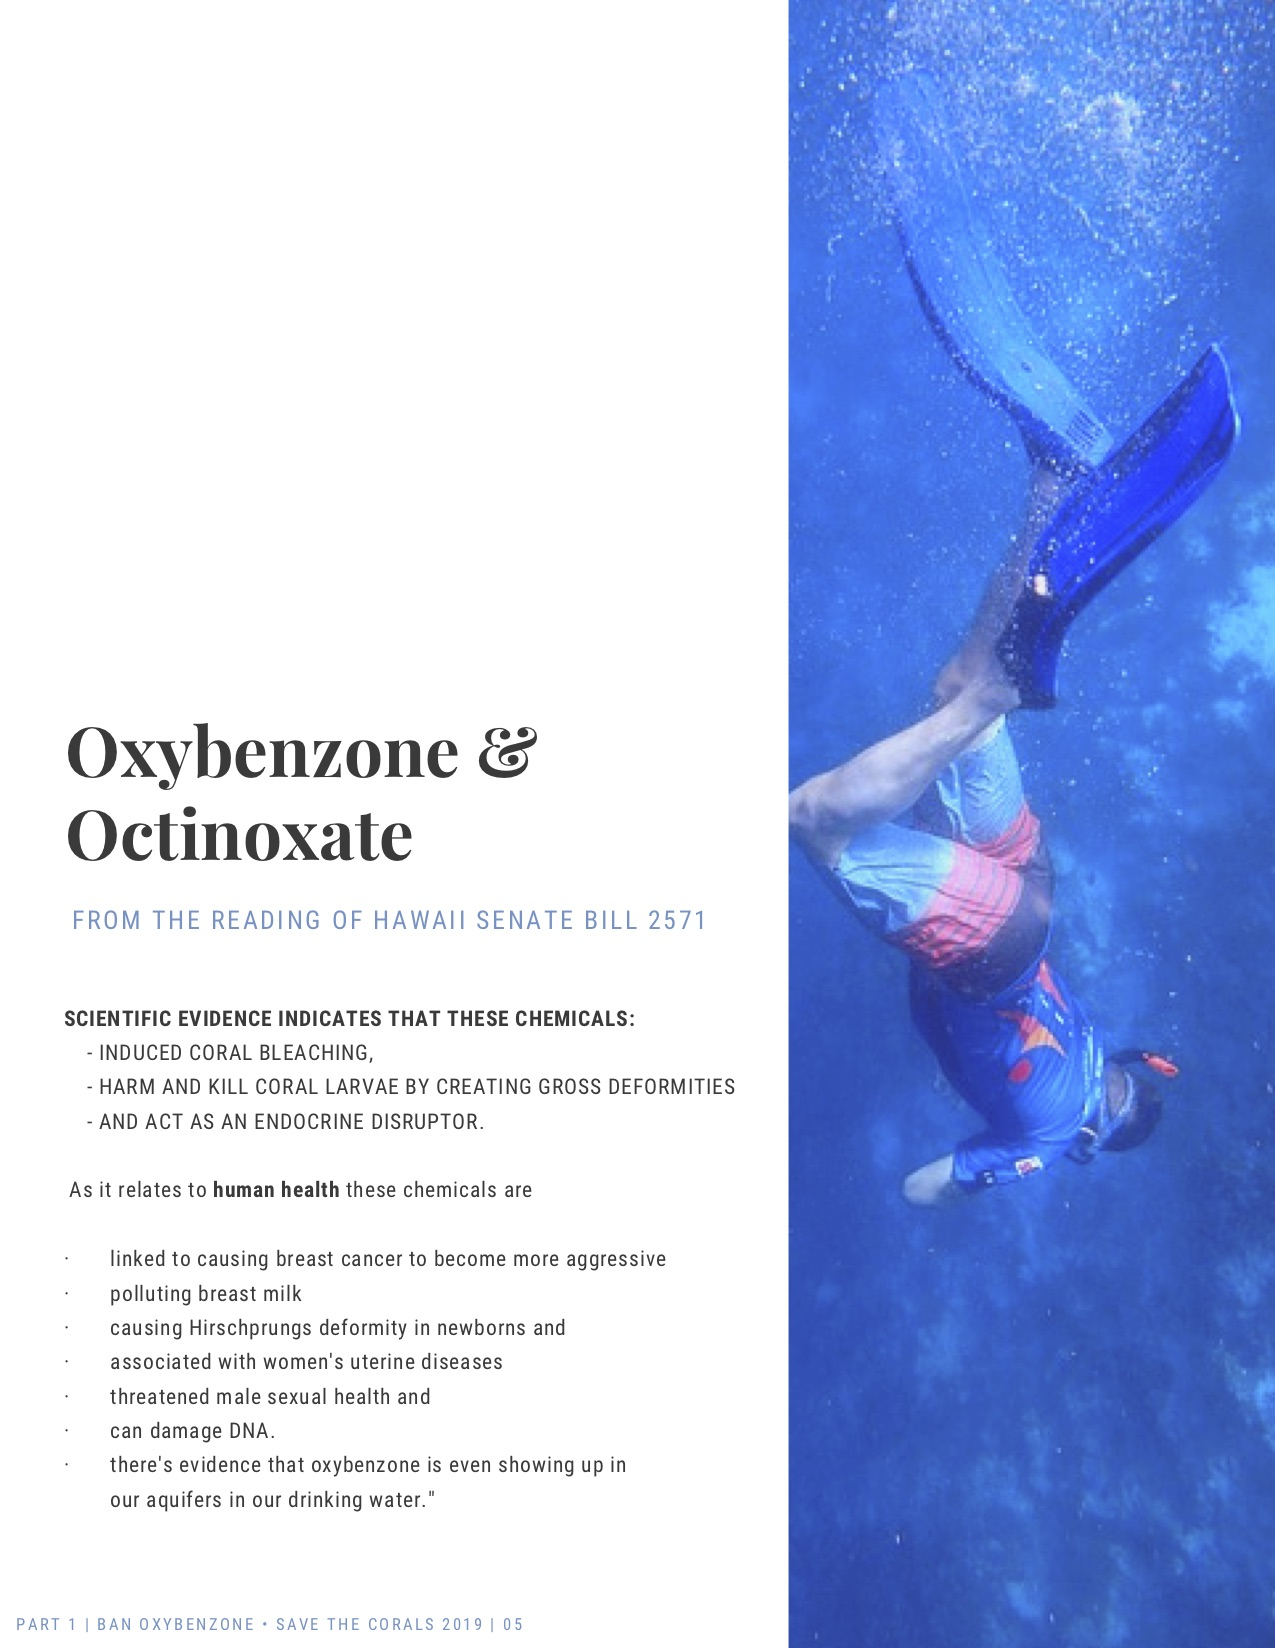 ban-oxybenzone-part-1-oxybenzone-and-octinoxate-05.jpg